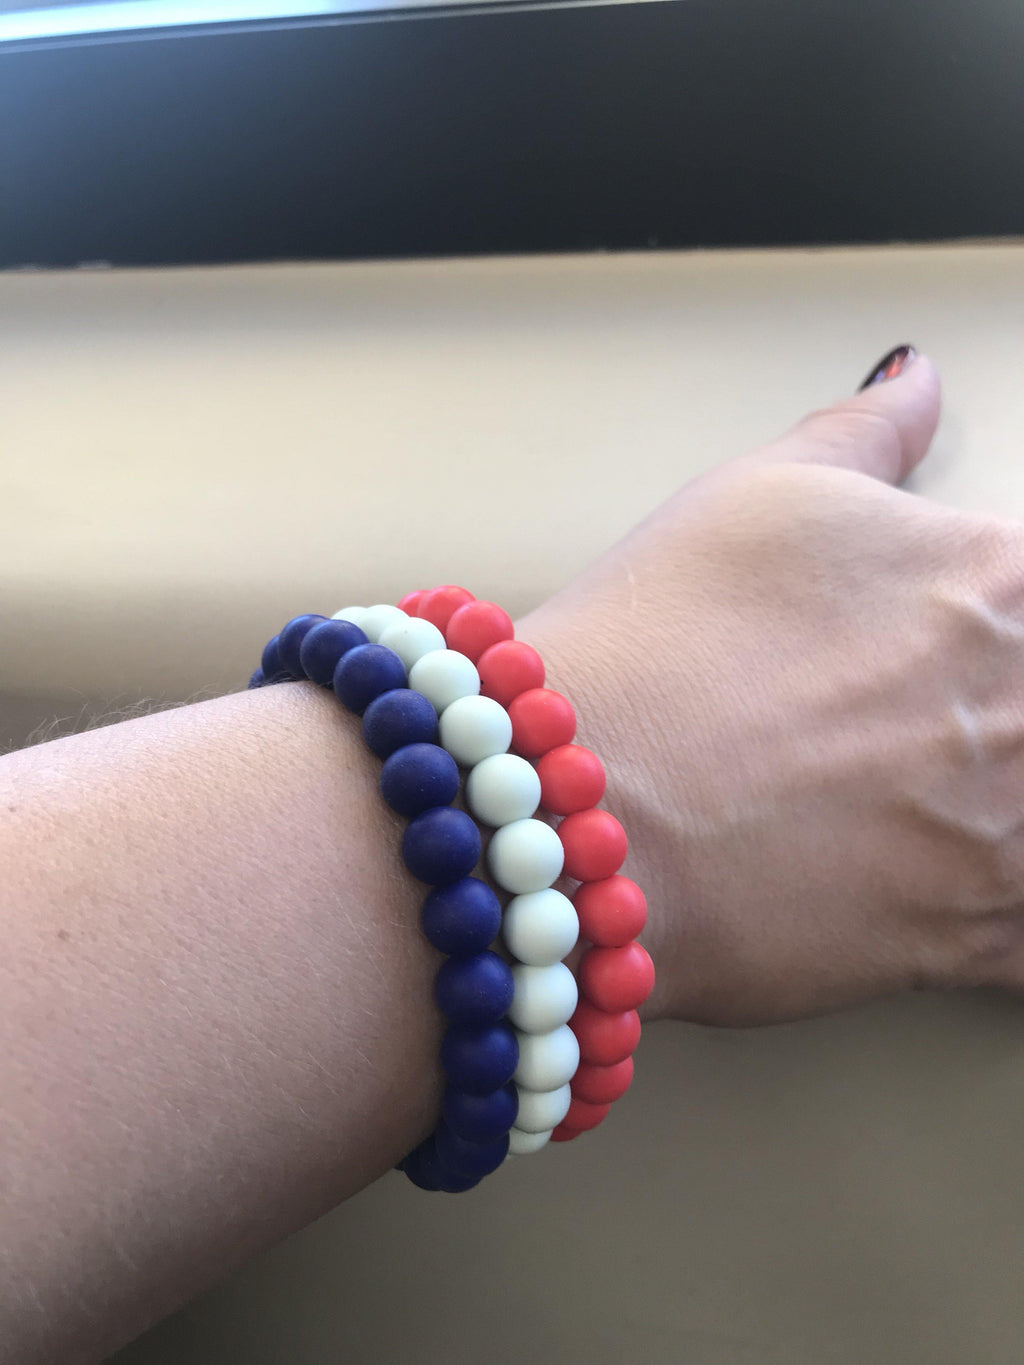 Navy Silicon rubber 9MM bead bracelets - The Gallant Way